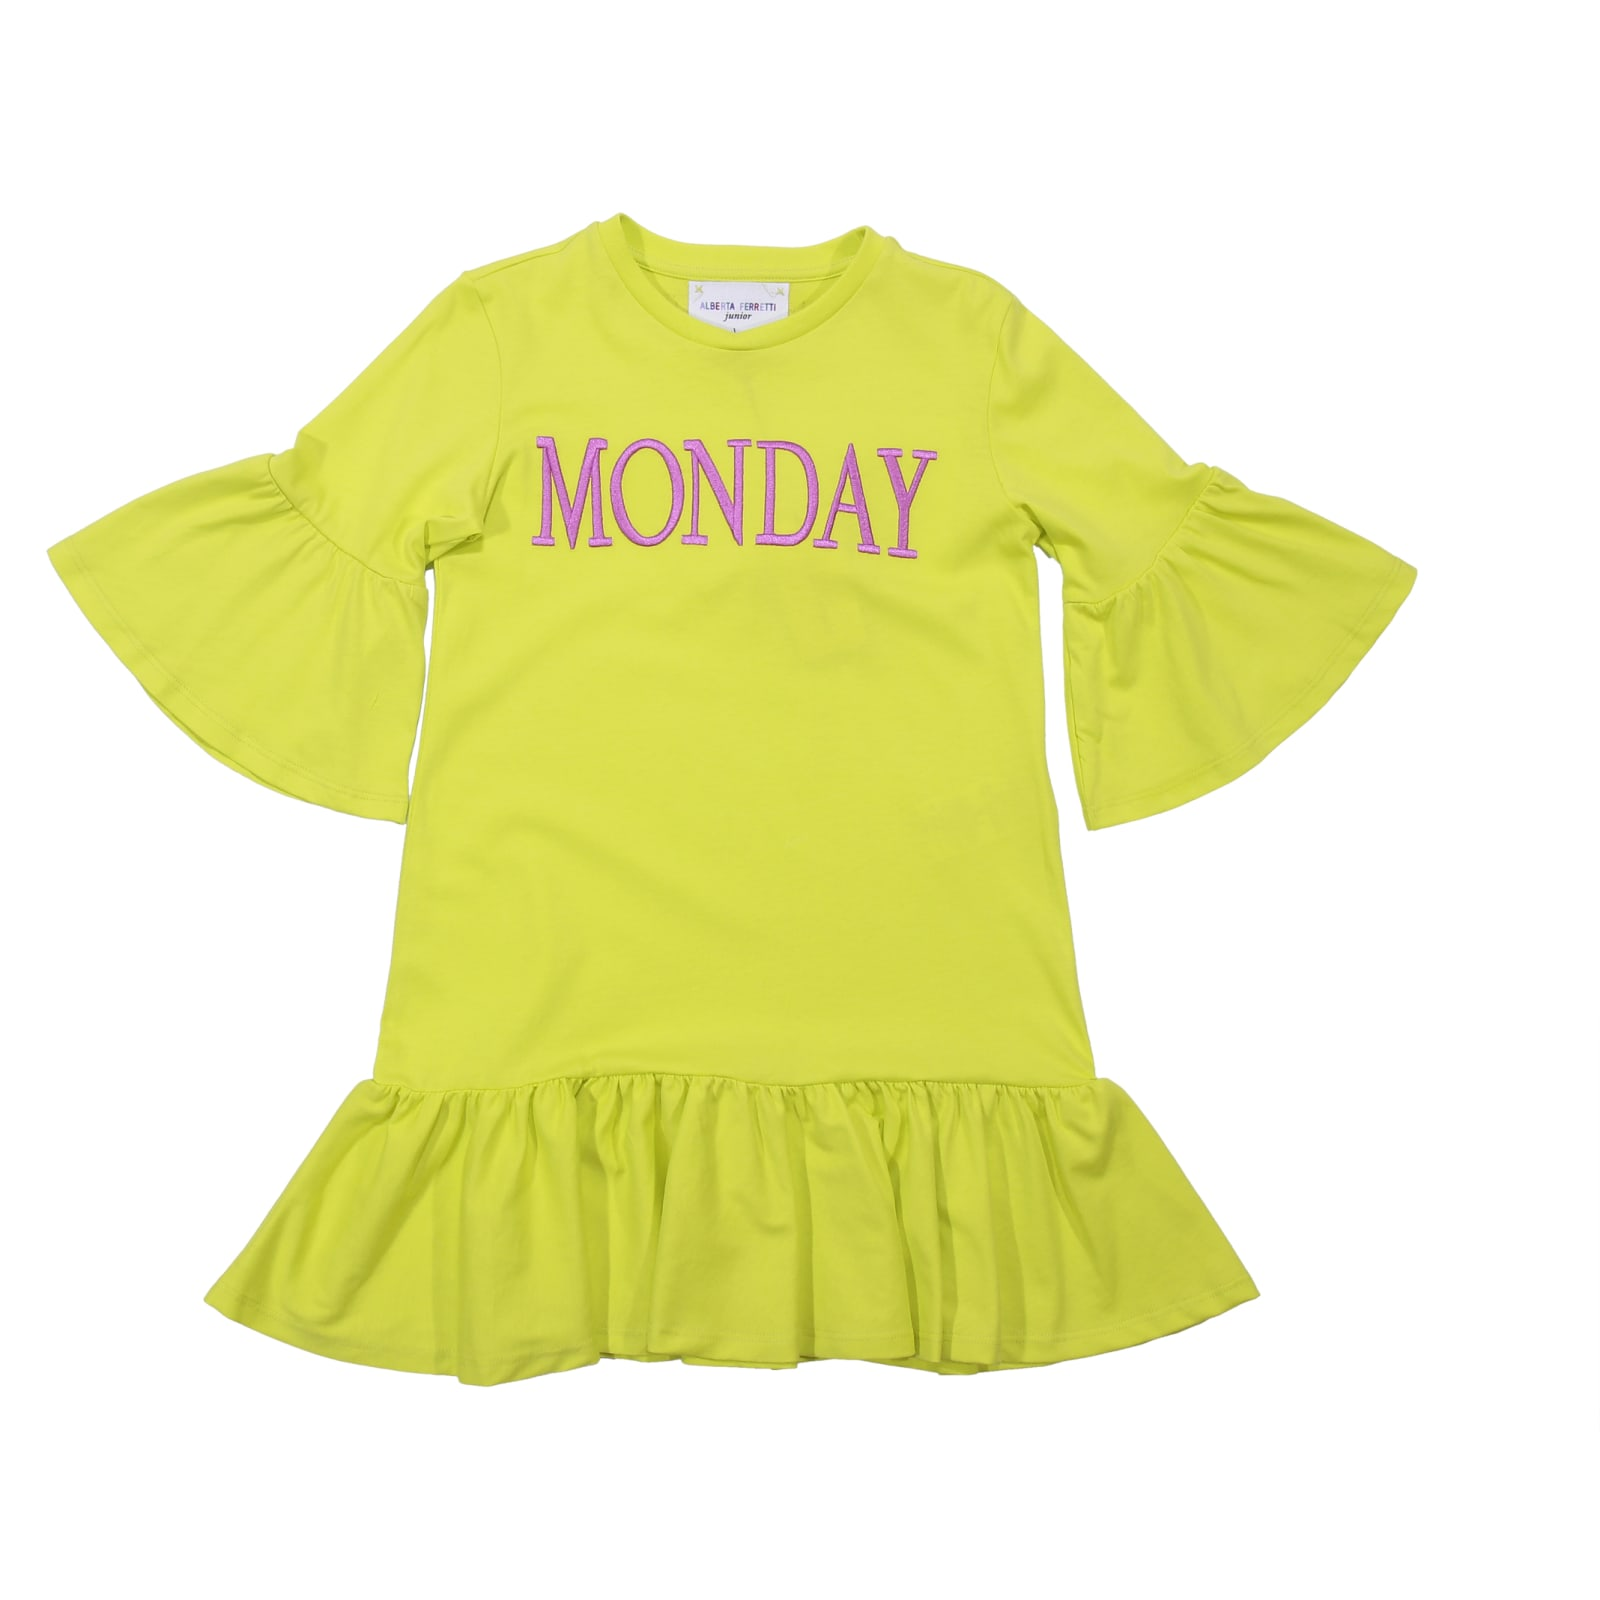 Alberta Ferretti Monday Yellow Cotton Dress